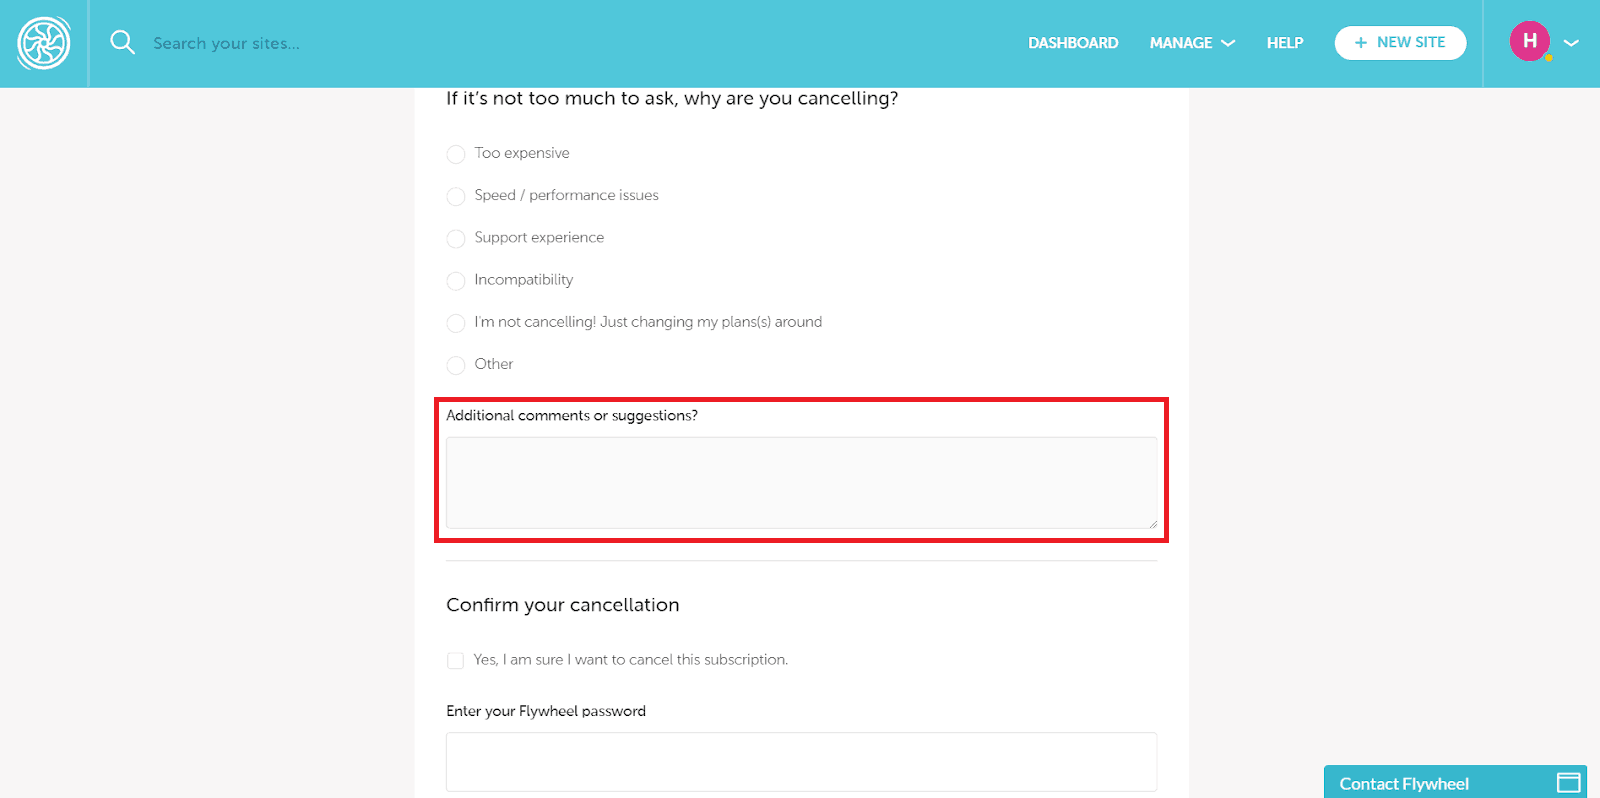 How-to-Cancel-Your-Account-with-Flywheel-and-Get-a-Refund-image2